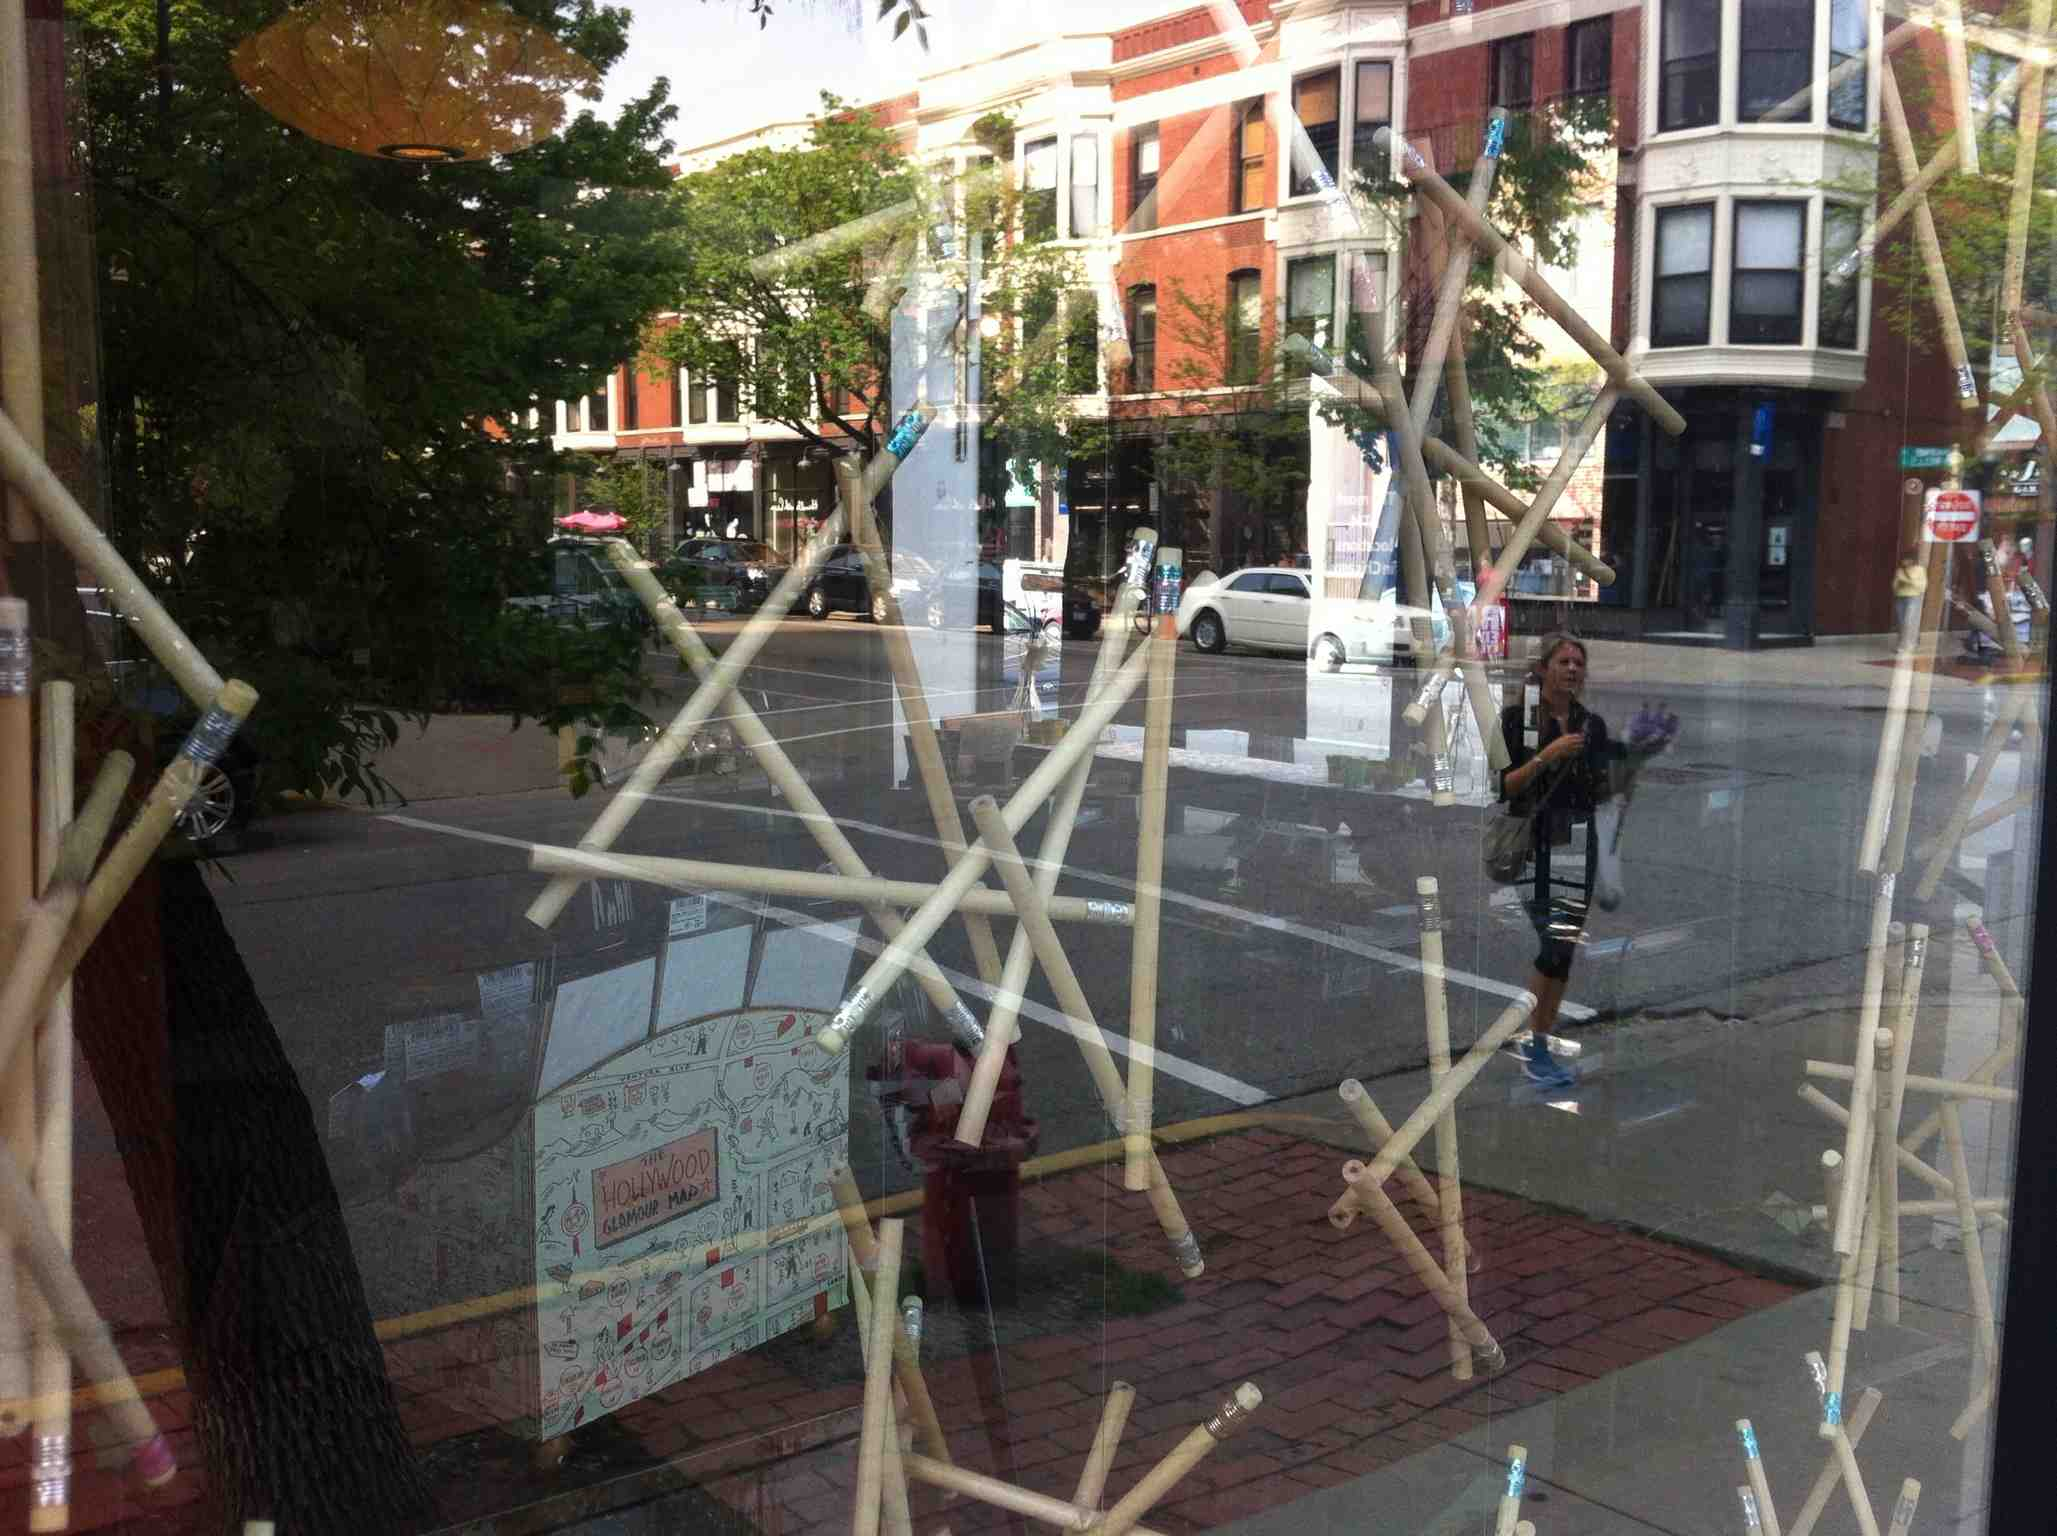 This is a stationary store window in Old Town.  I loved the  fun use of the pencils.  It was only later that I realize that reflection of the one-legged women really dominates the photograph and gives it an another level of fun/surprise which is what window licking is all about. Great streets are full of surprises.